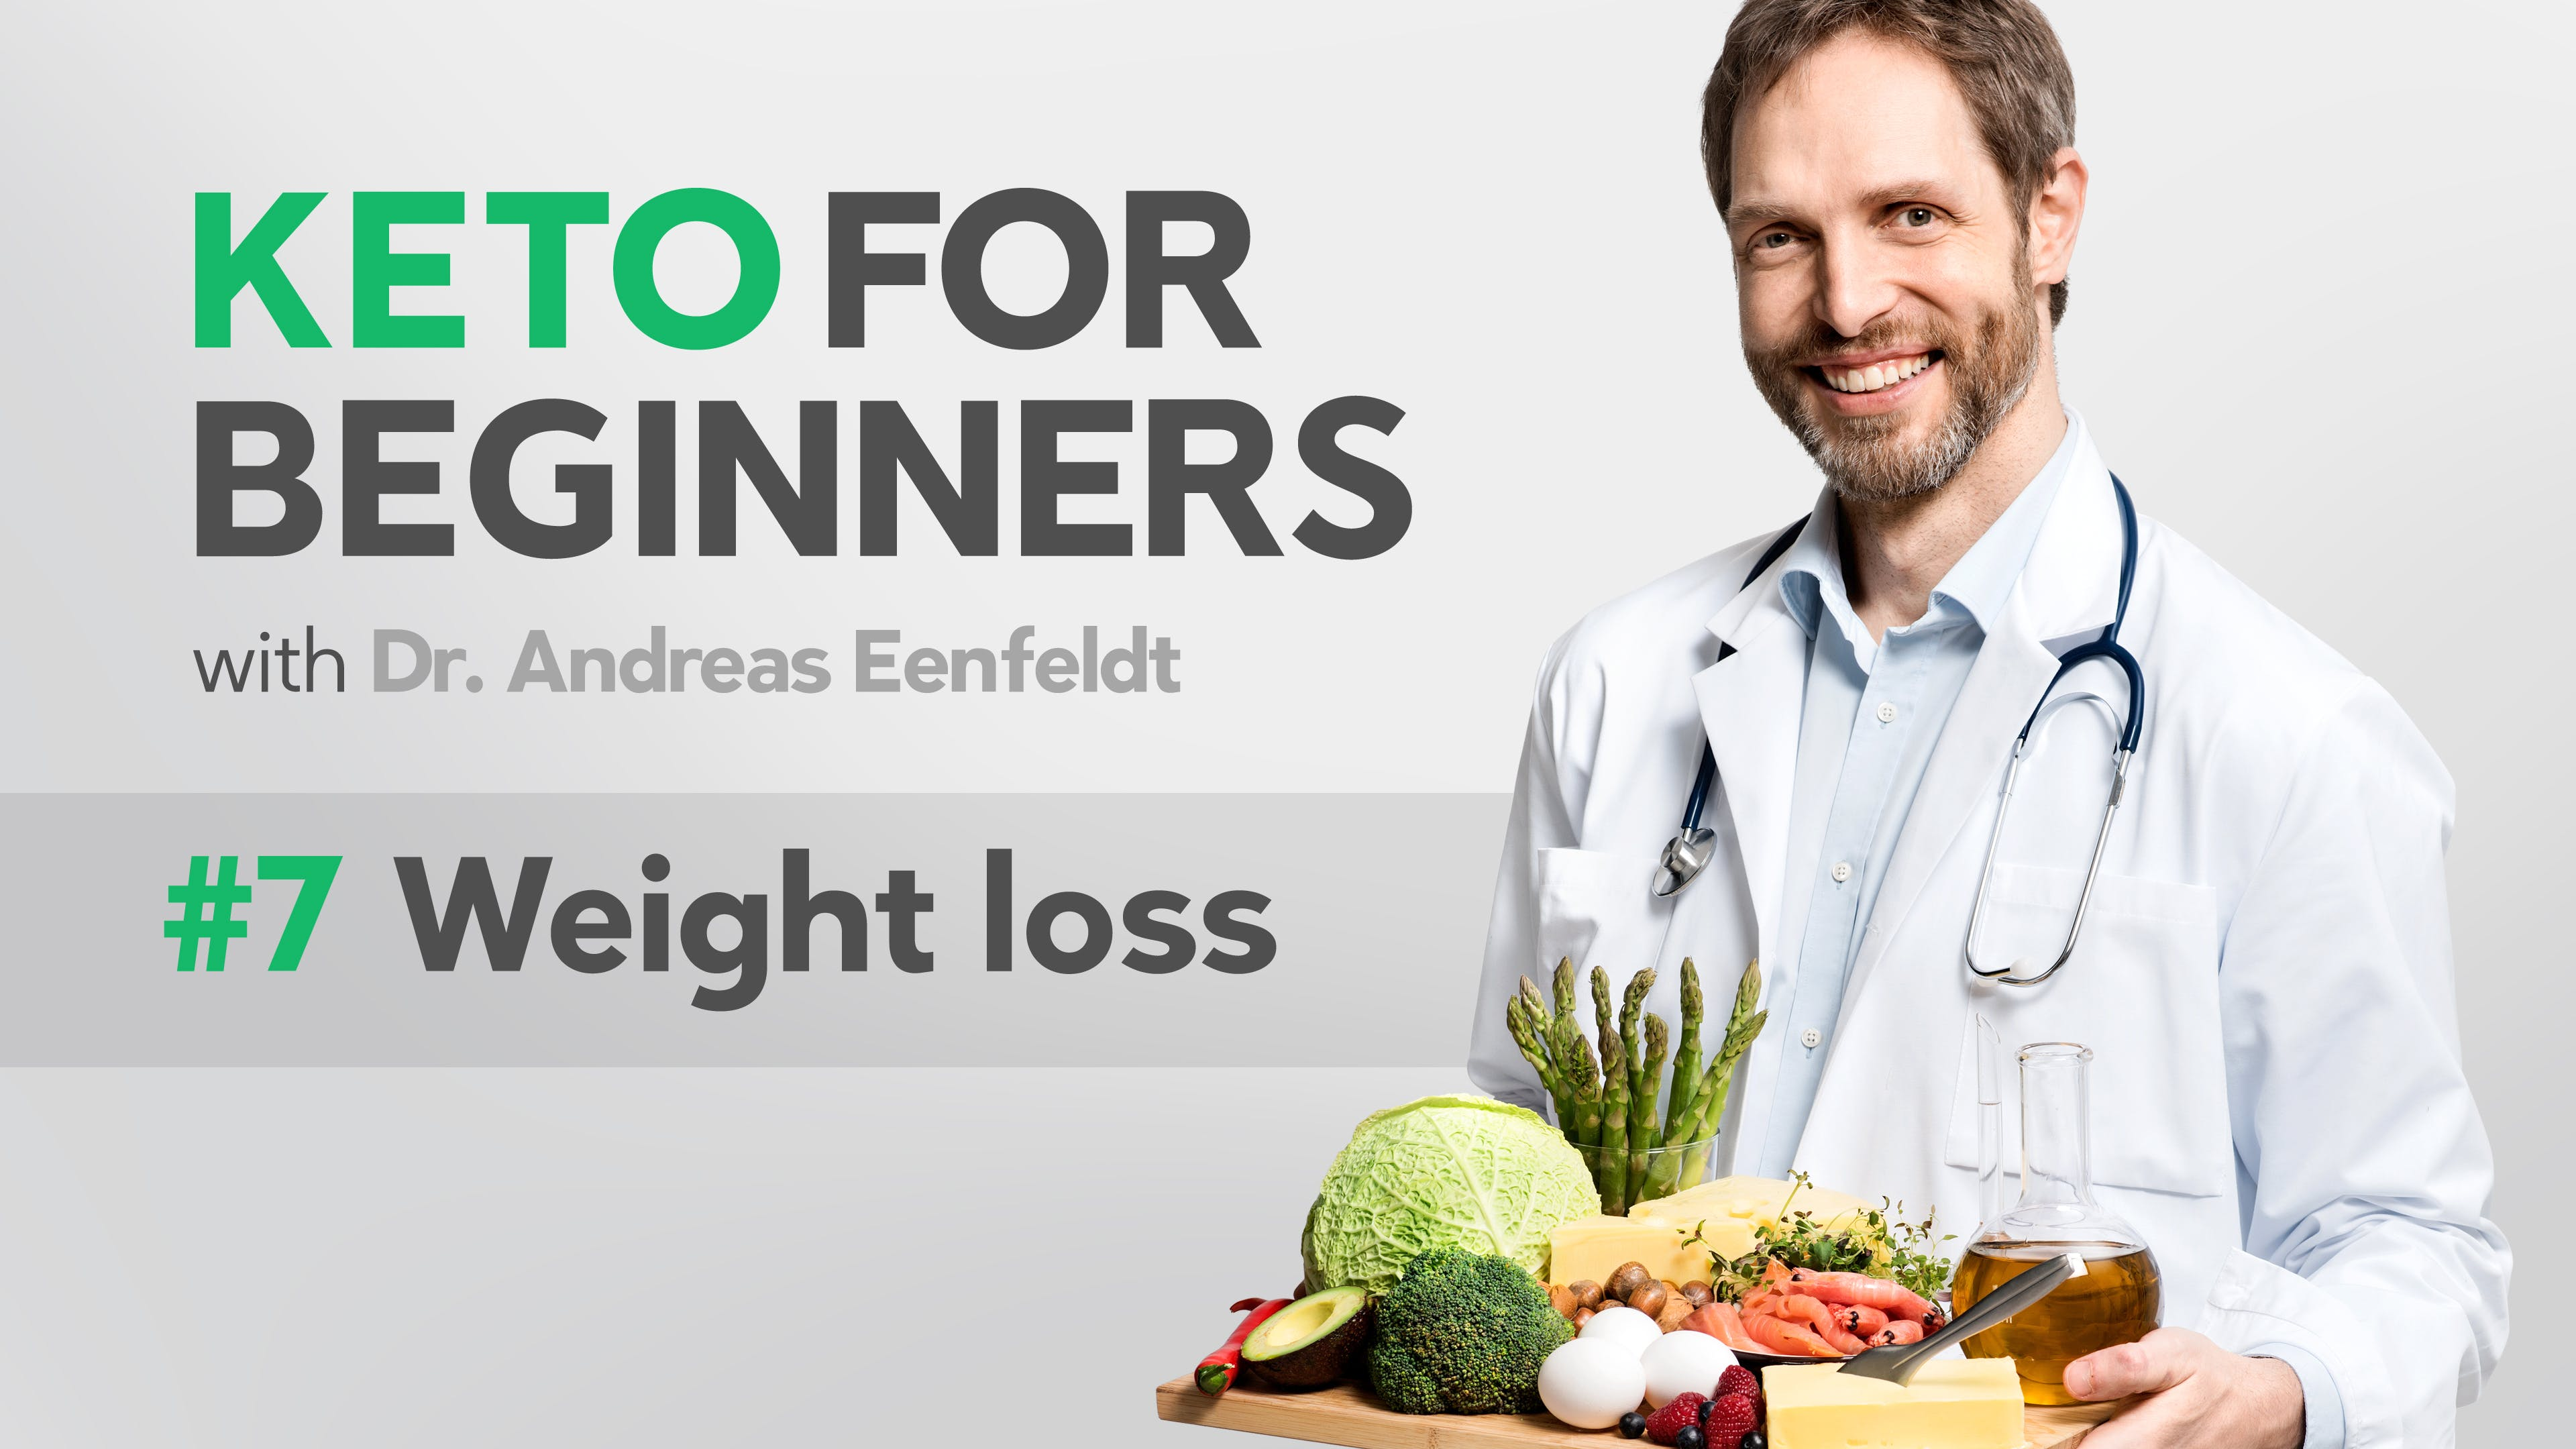 Keto for beginners: weight loss